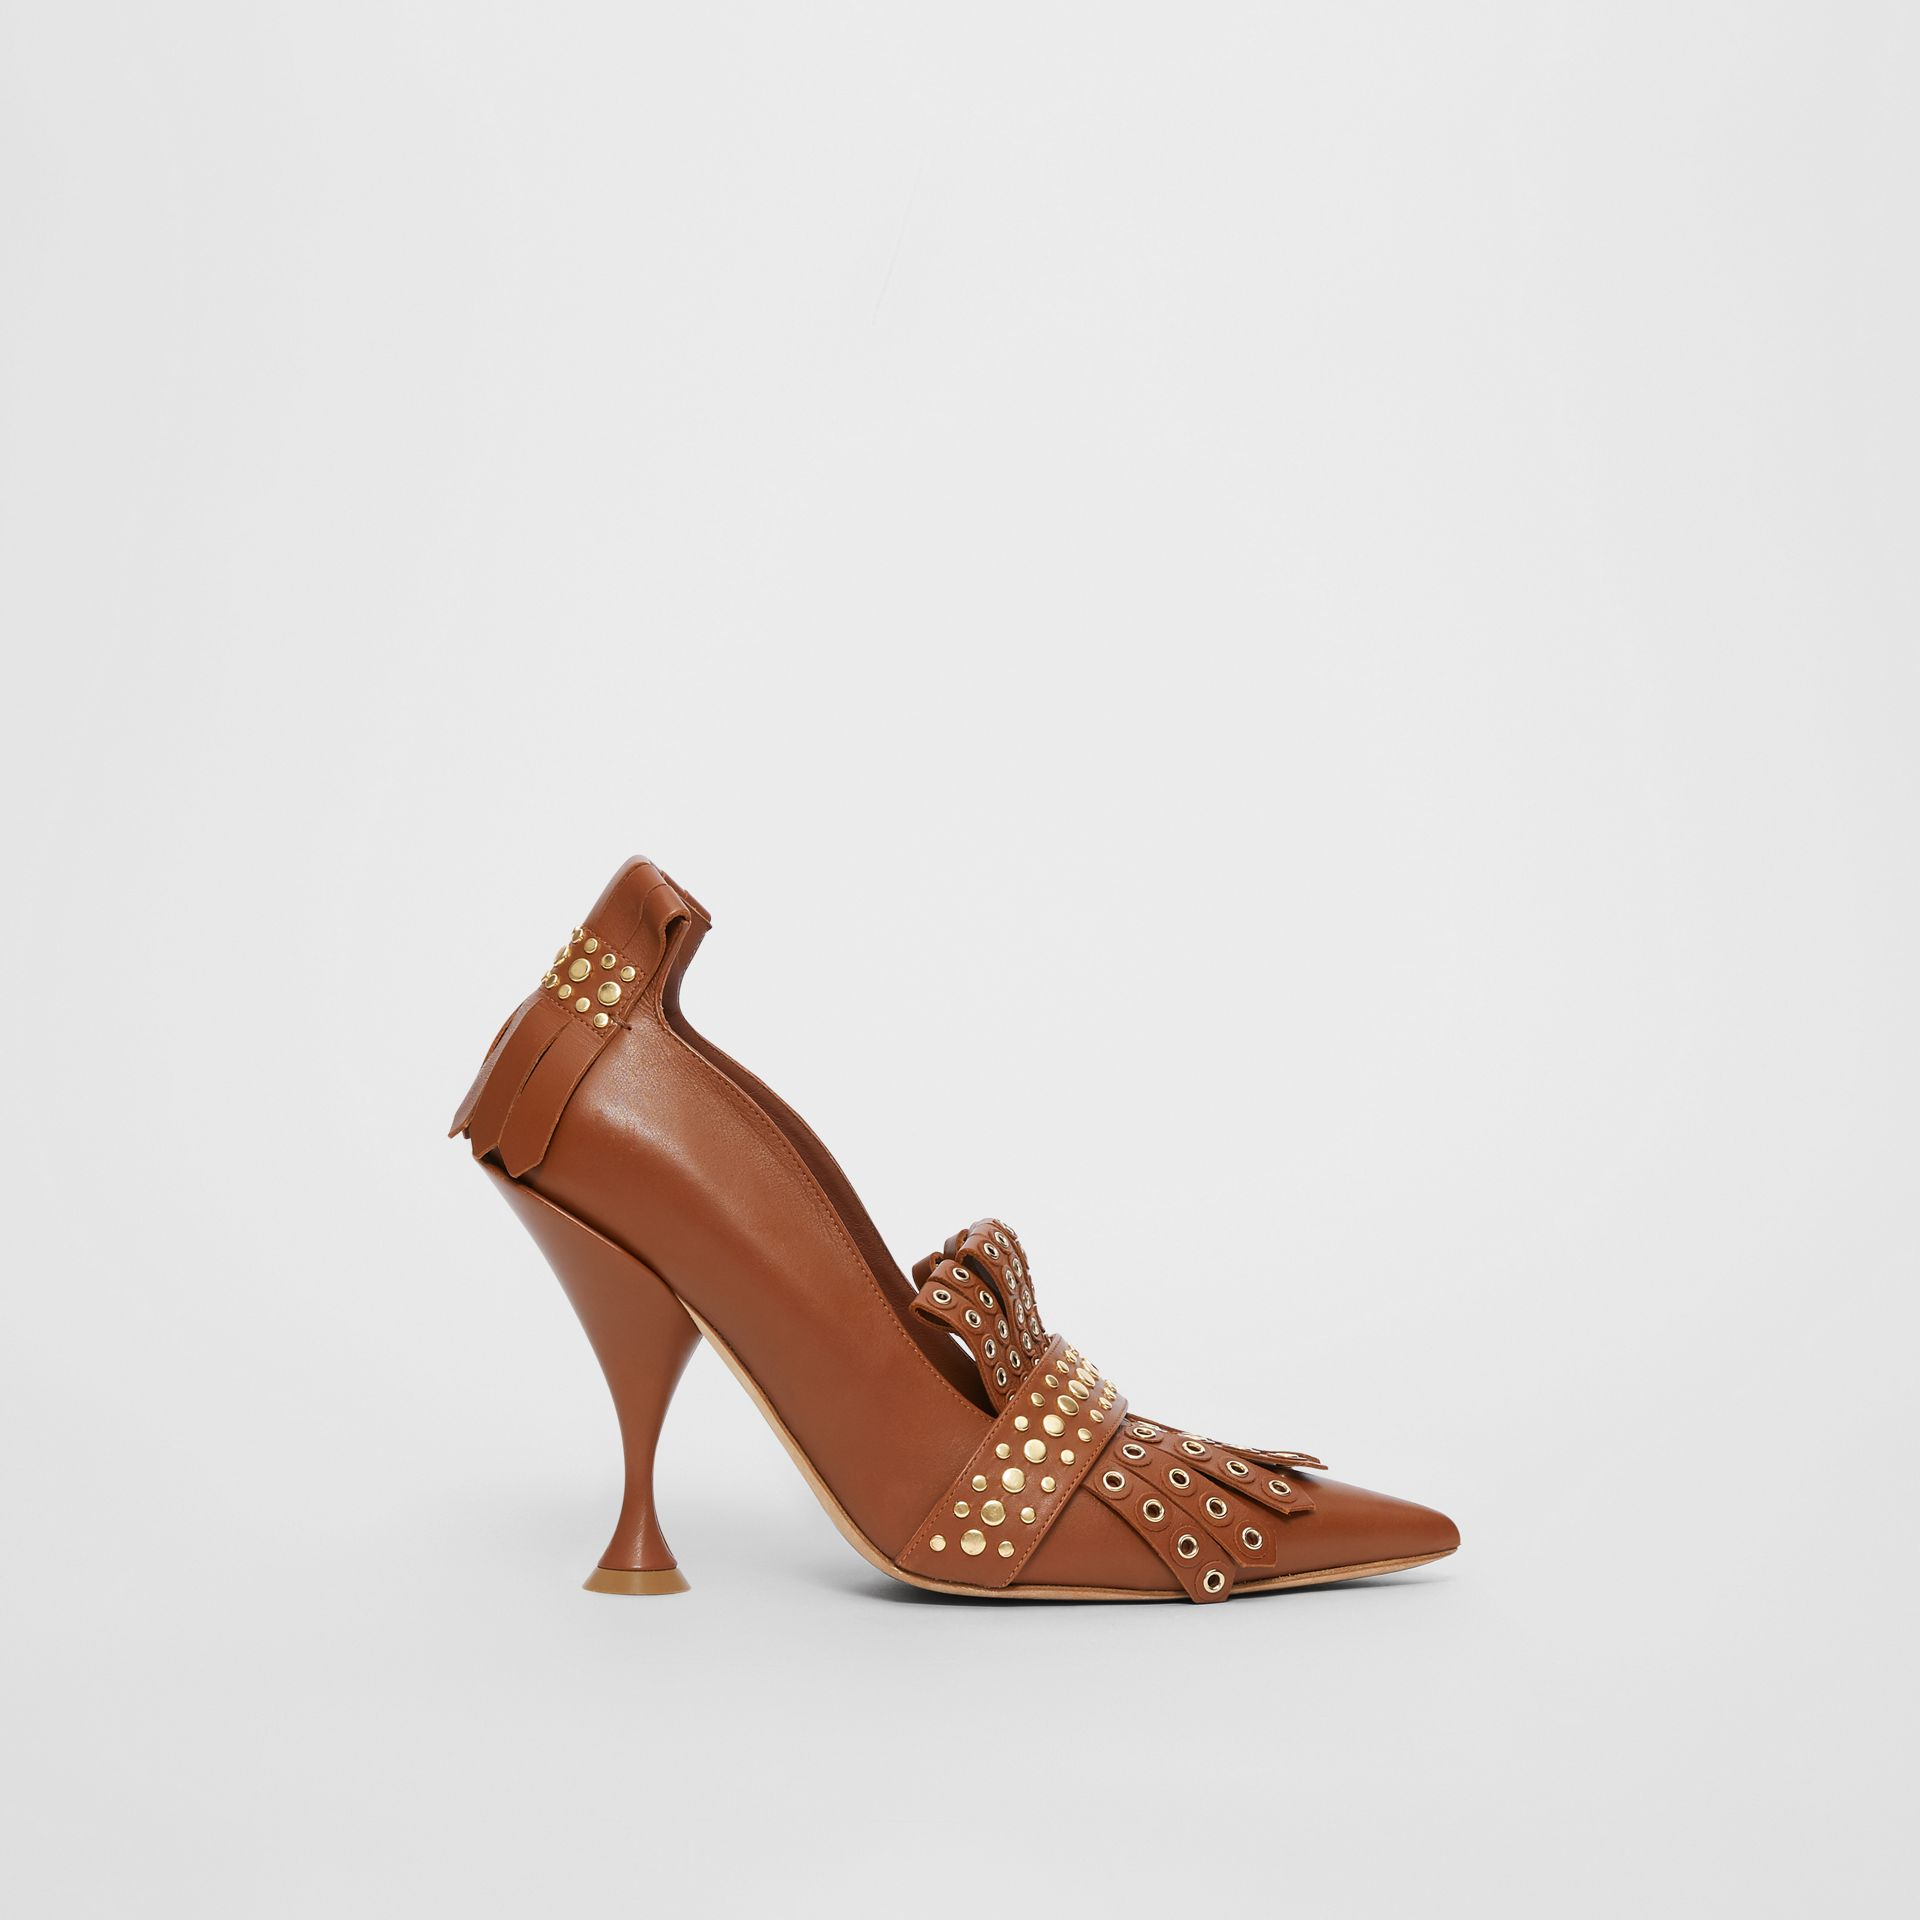 Studded Kiltie Fringe Leather Point-toe Pumps in Tan - Women | Burberry - gallery image 5